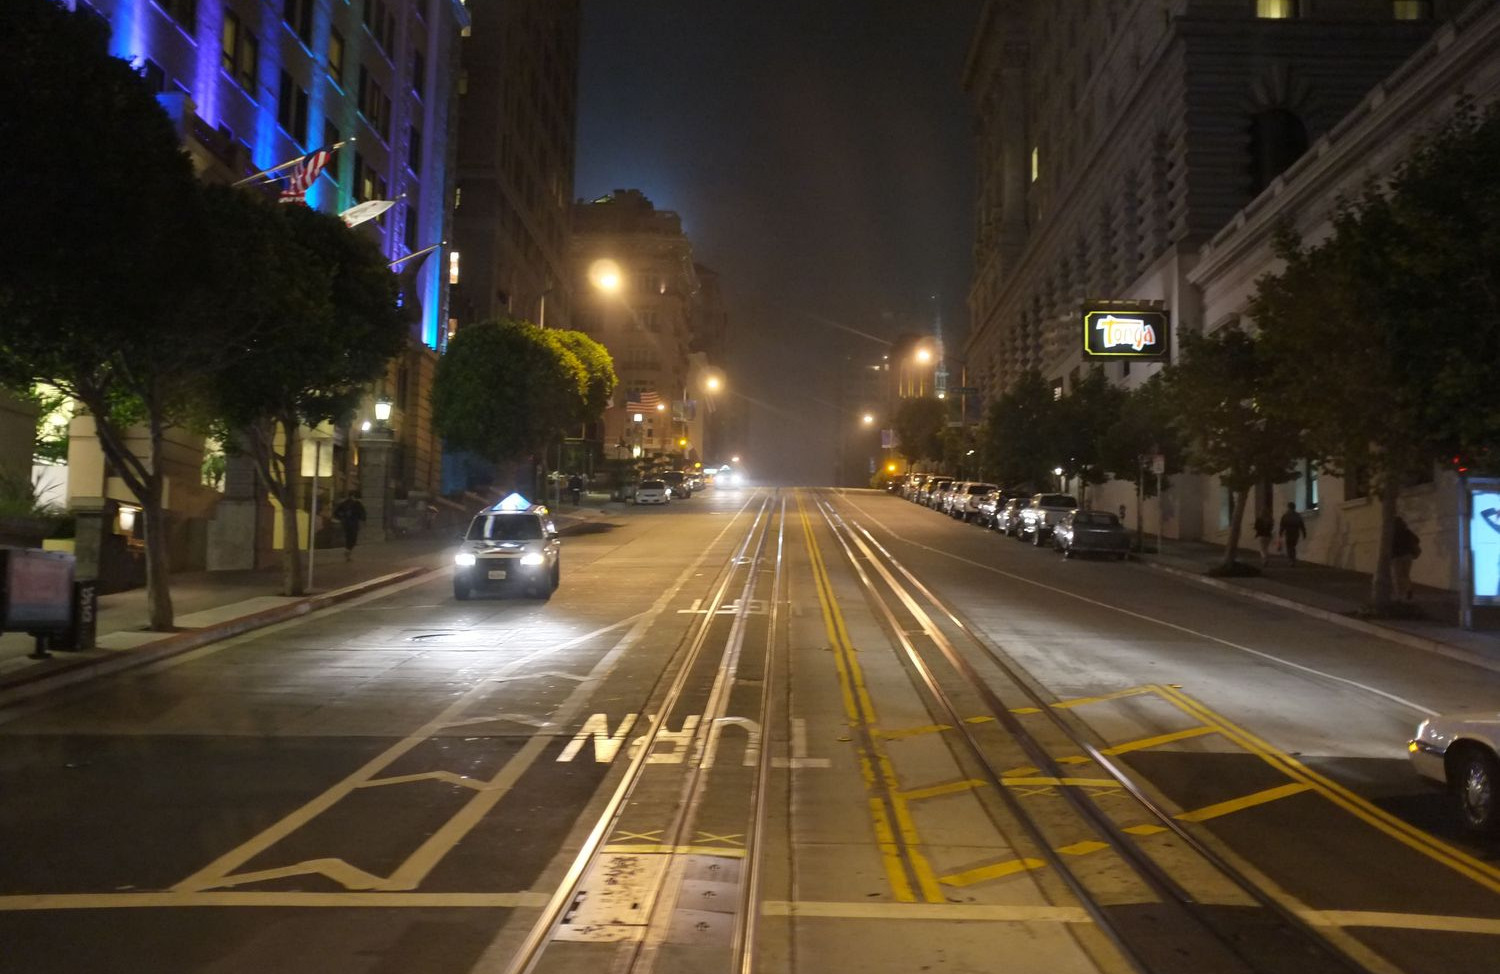 A night in San Fransisco